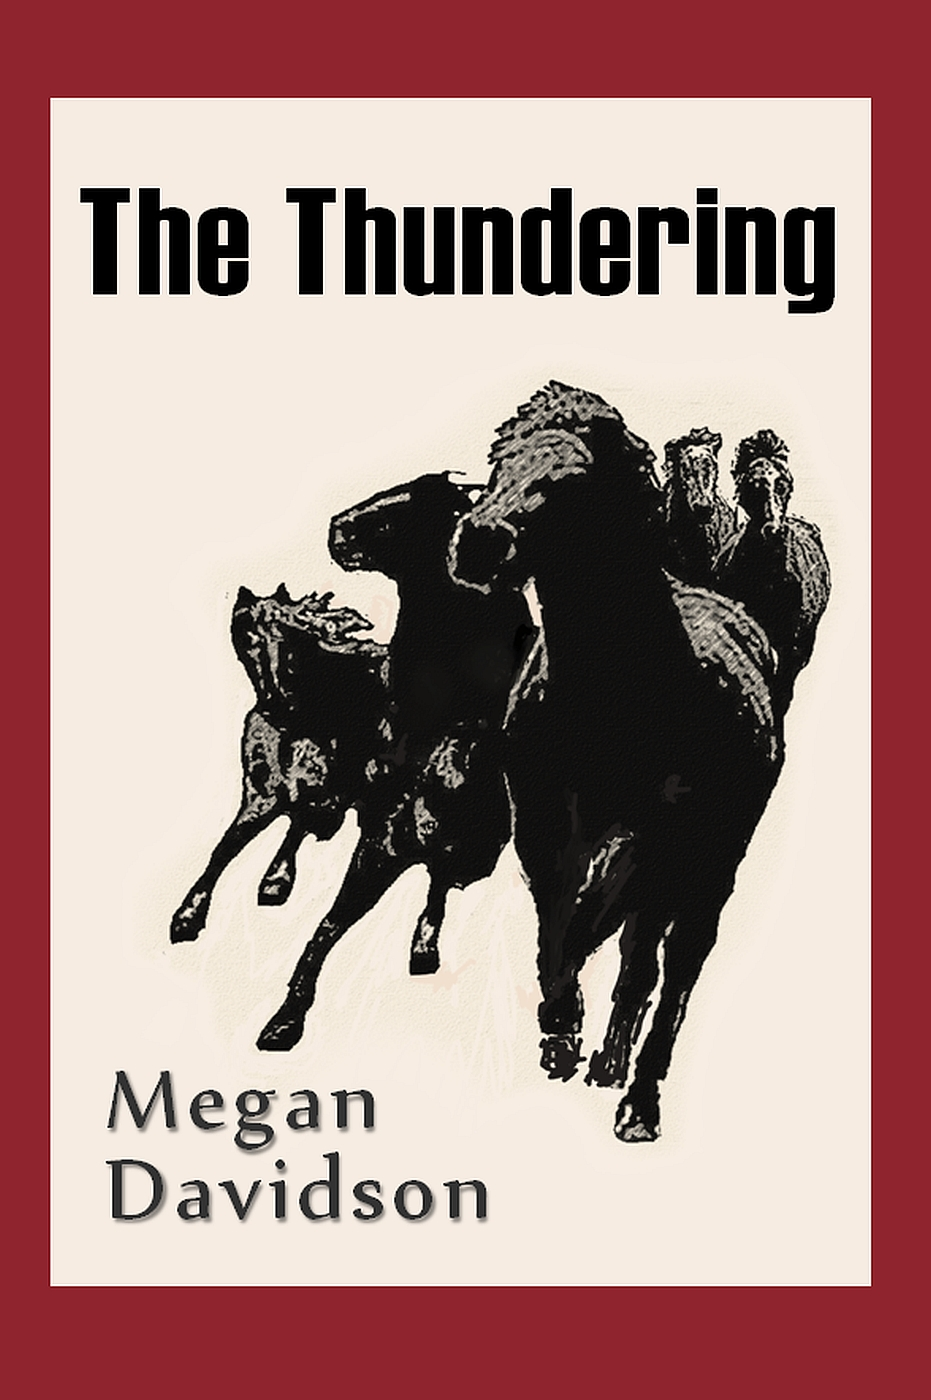 The Thundering